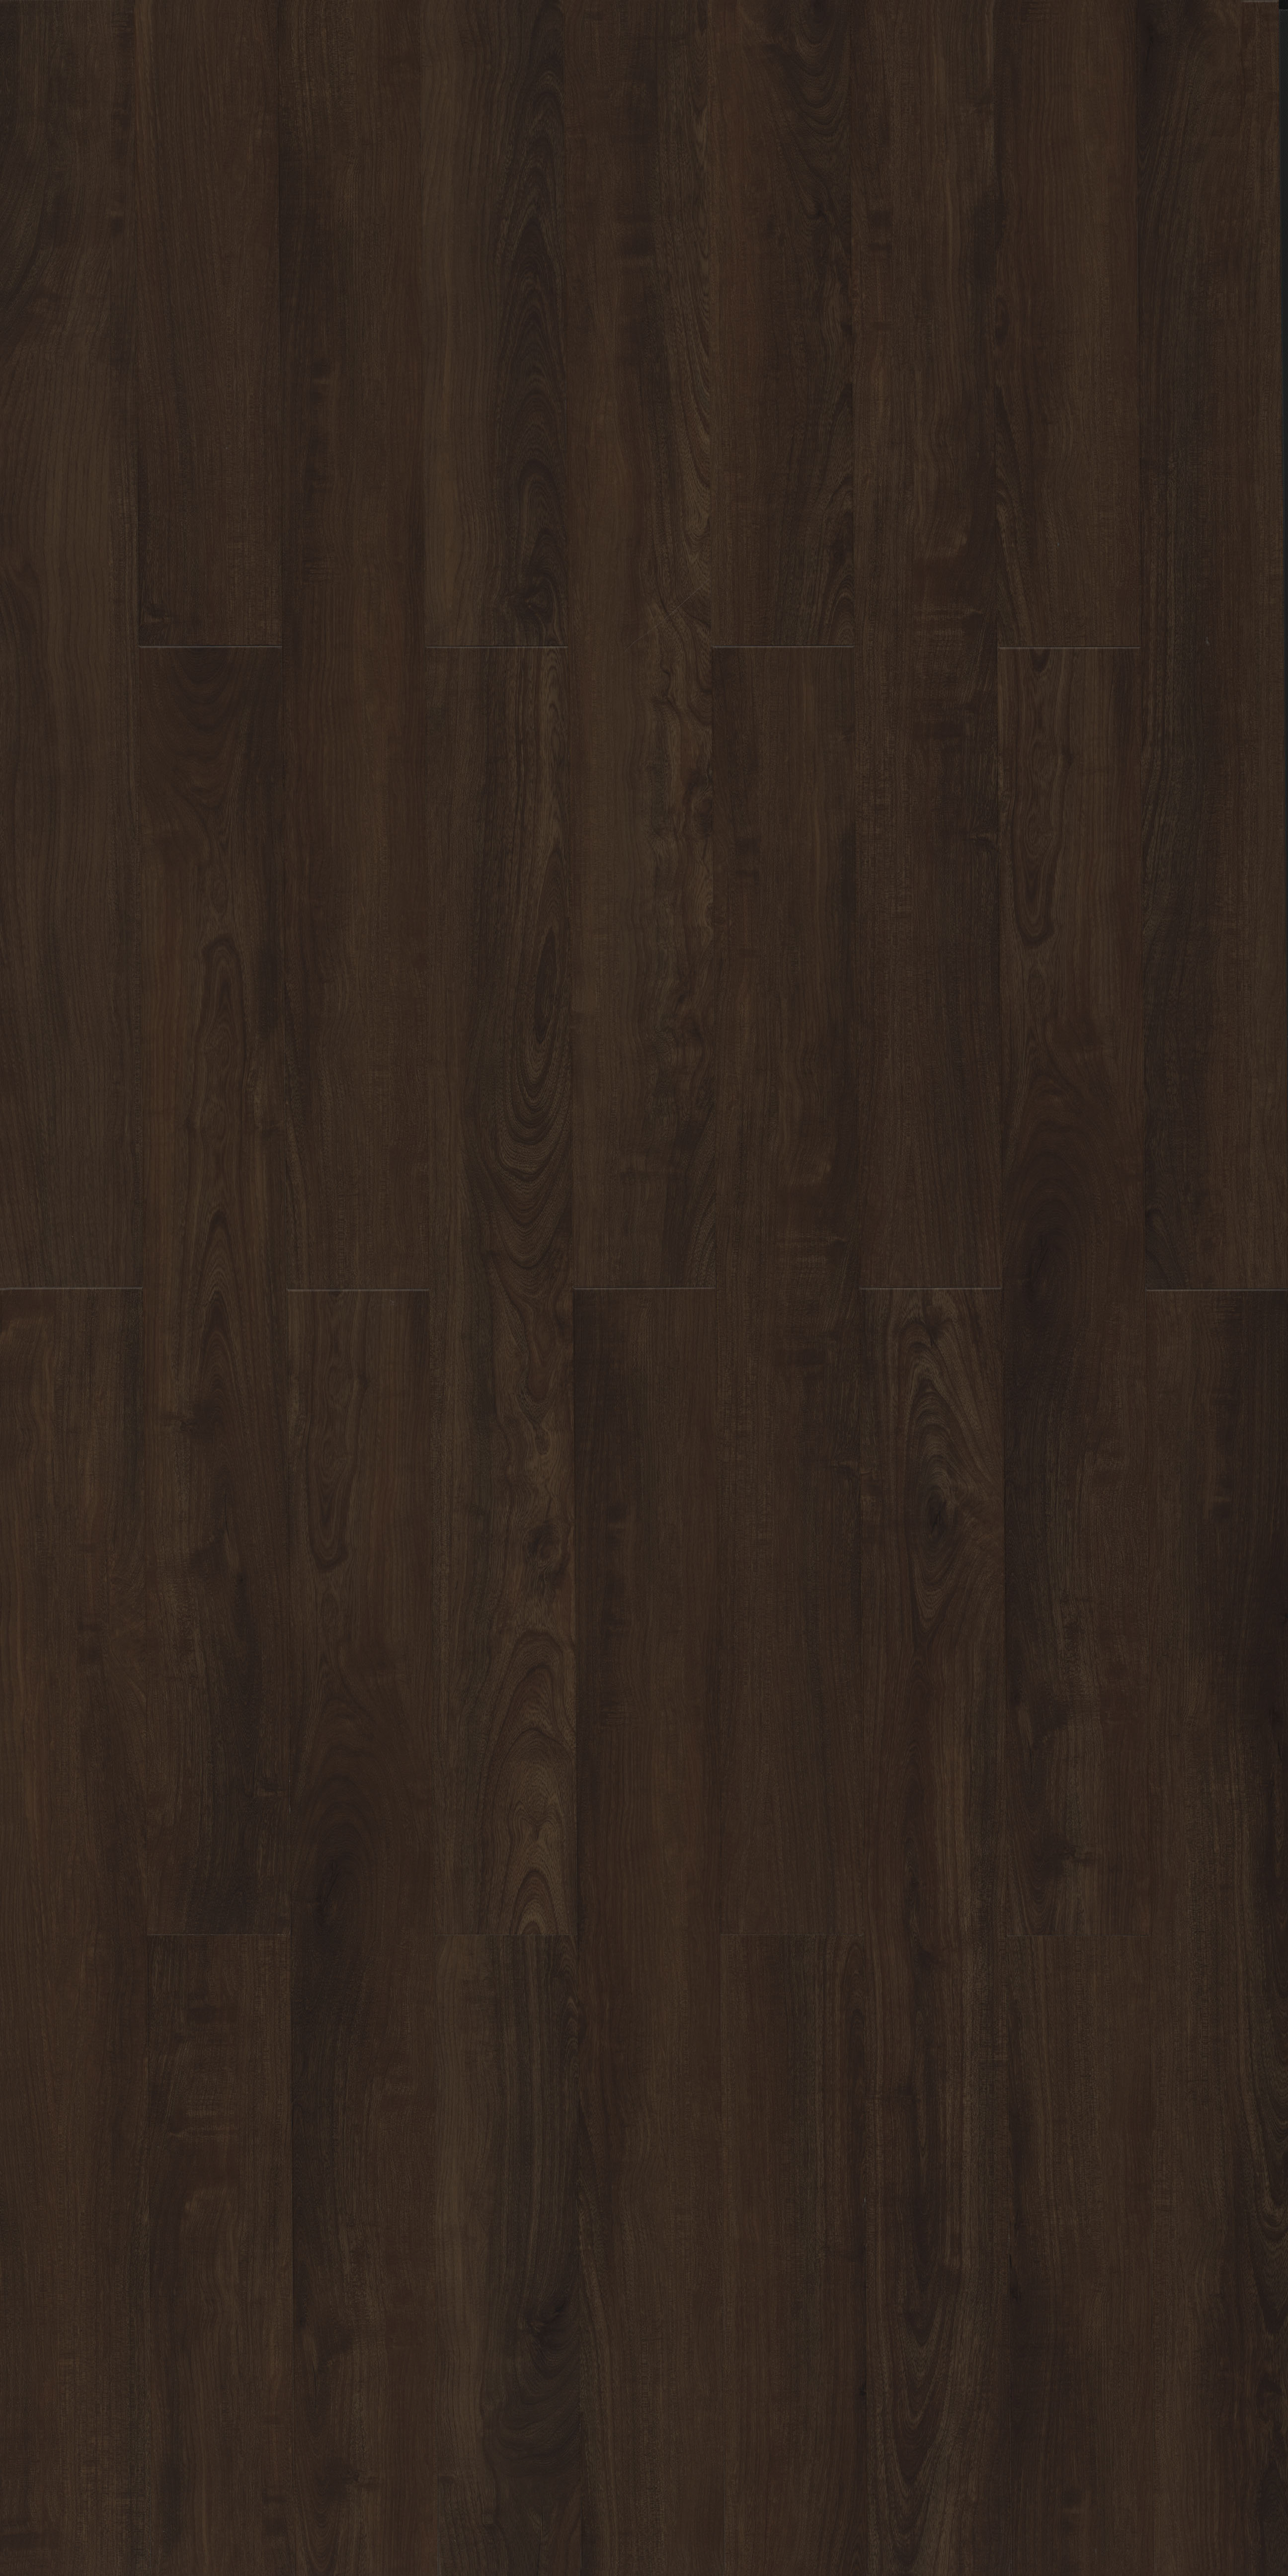 American Walnut Sienna Tp052 Armstrong Flooring Commercial